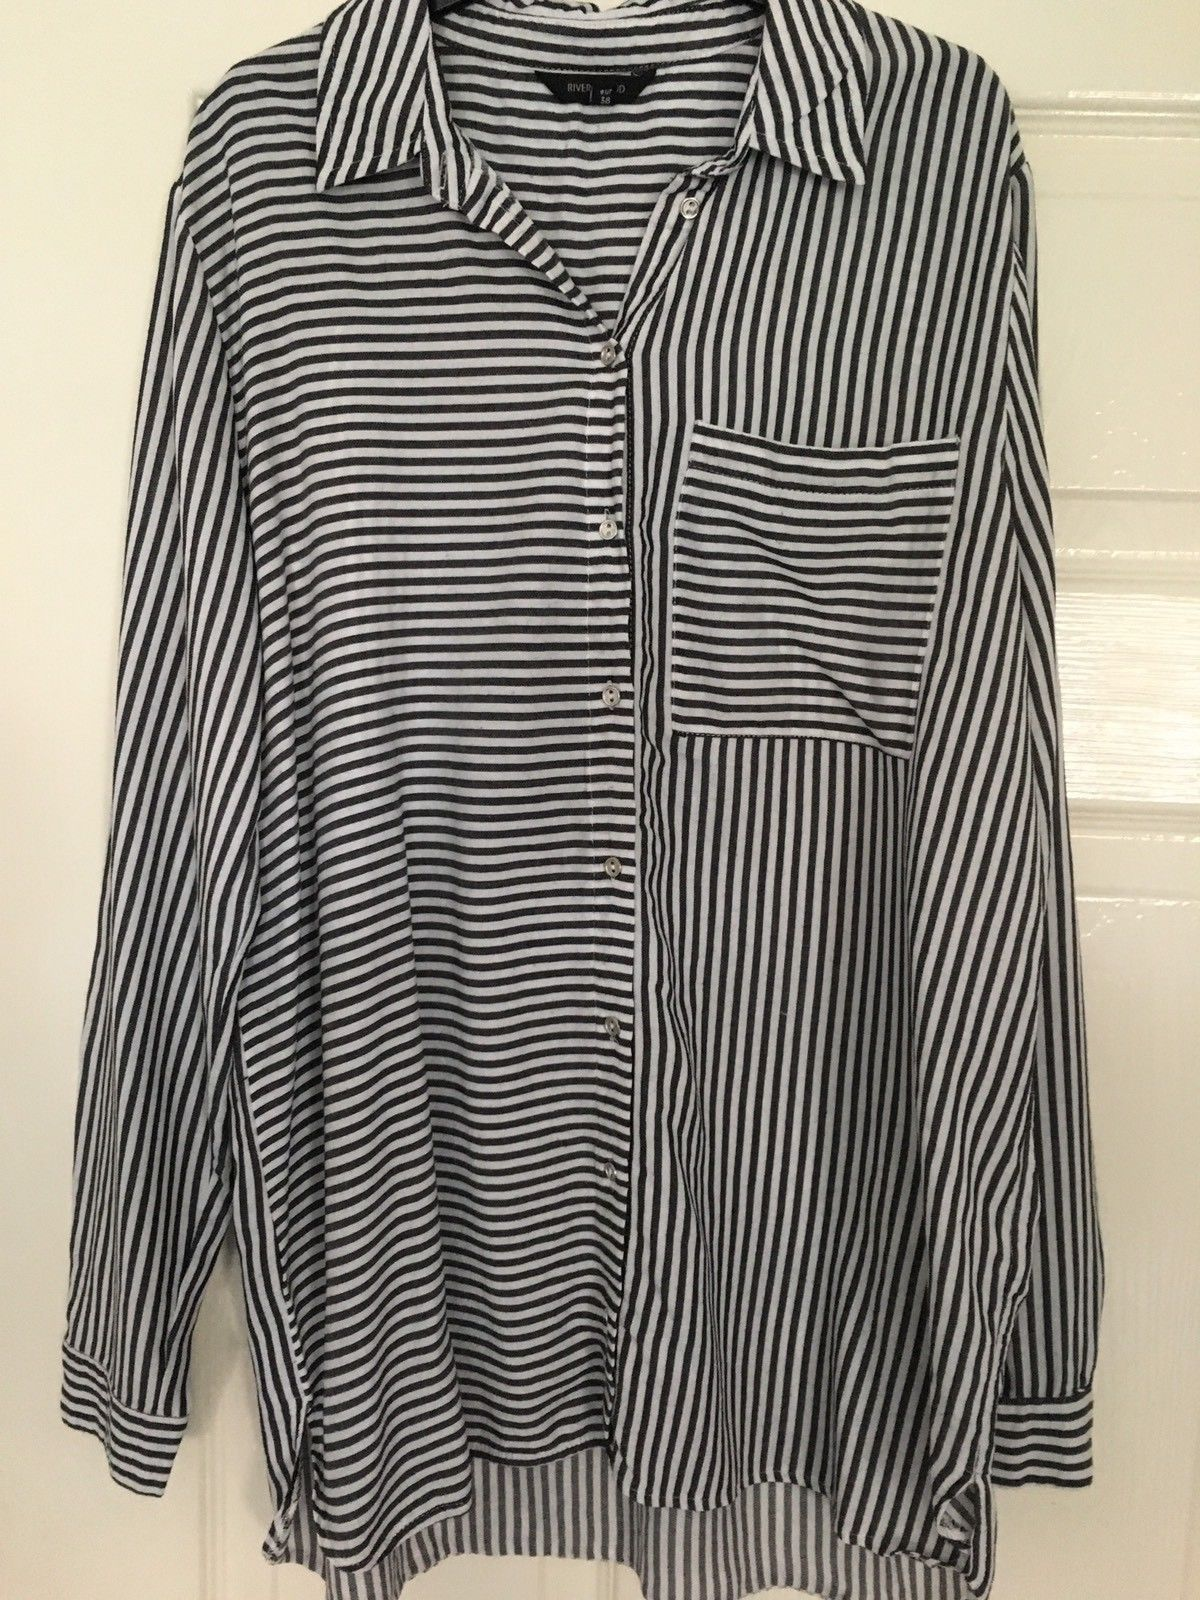 $  4.52 (9 Bids)End Date: Oct-05 02:01Bid now  |  Add to watch listBuy this on eBay (Category:Women's Clothing)...